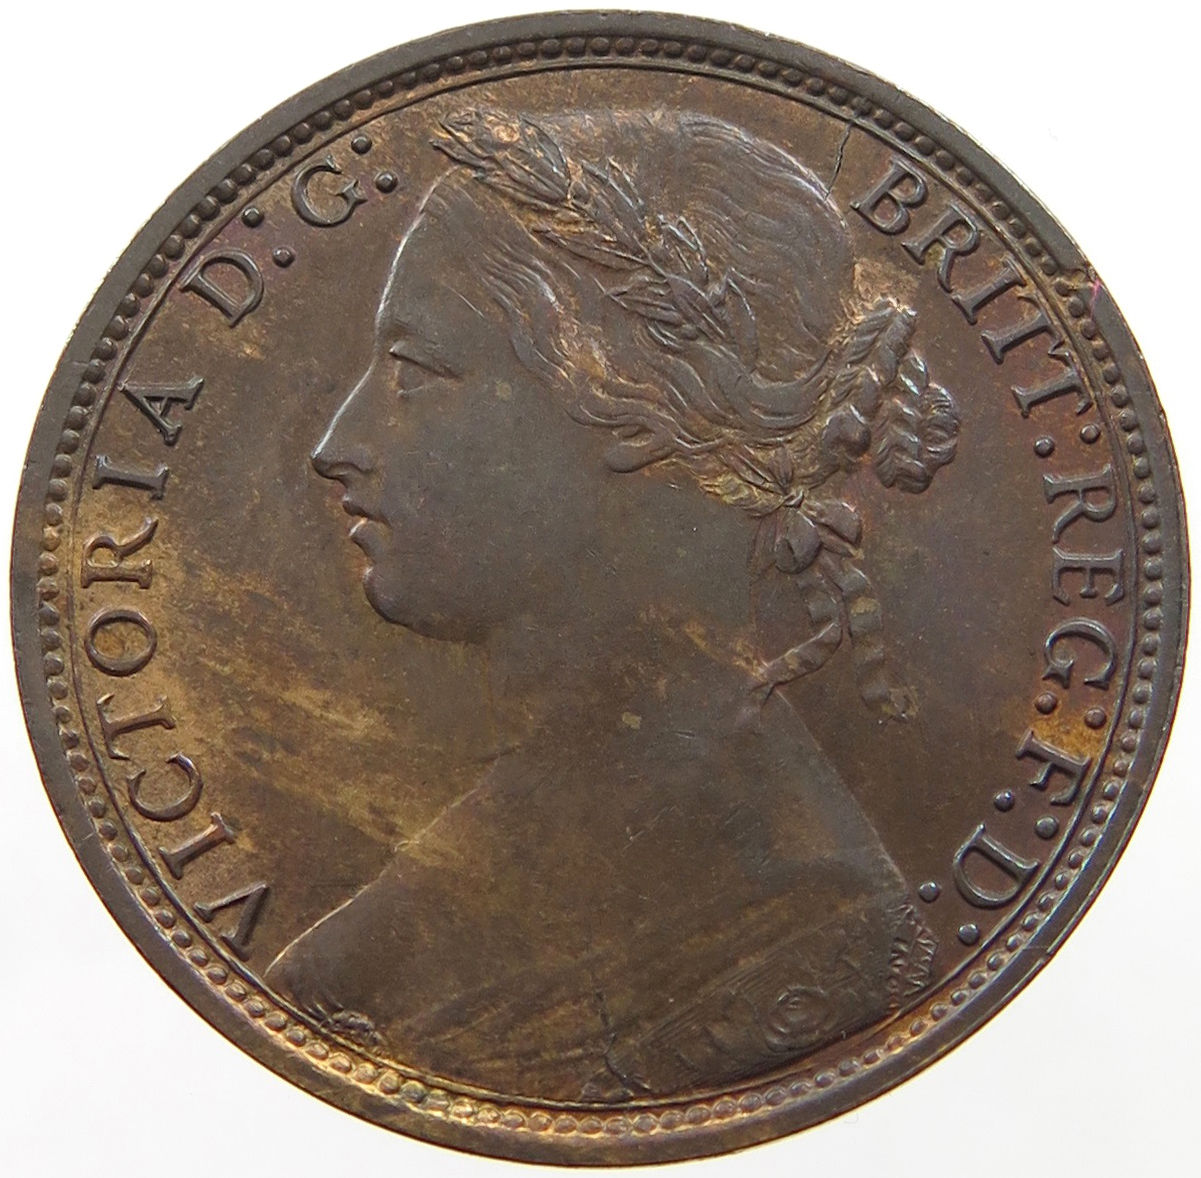 Penny 1878: Photo Great Britain Penny 1878